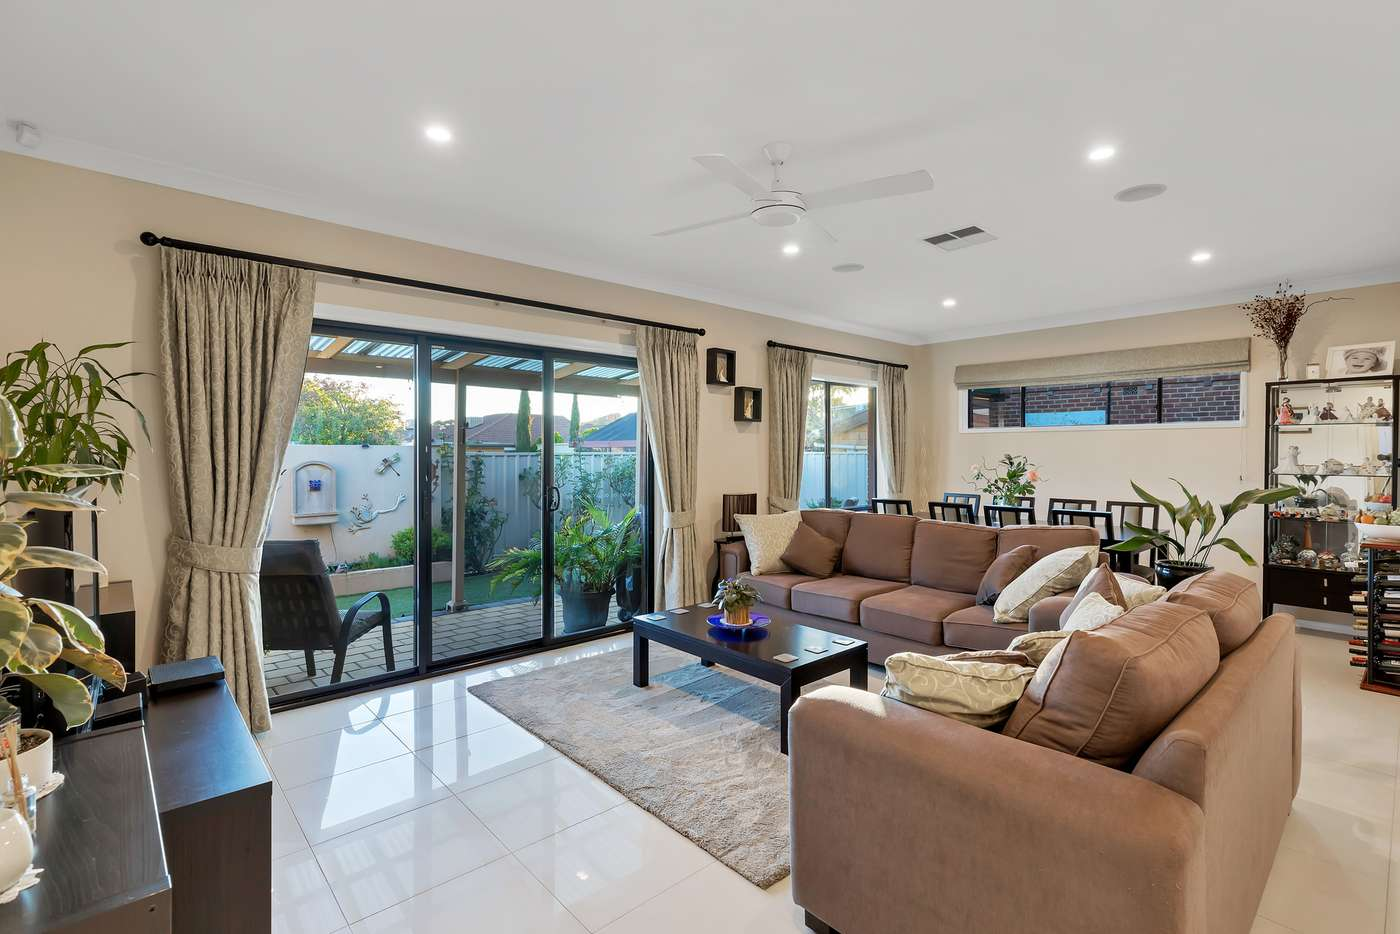 Fifth view of Homely house listing, 4 Stuart Street, Glandore SA 5037